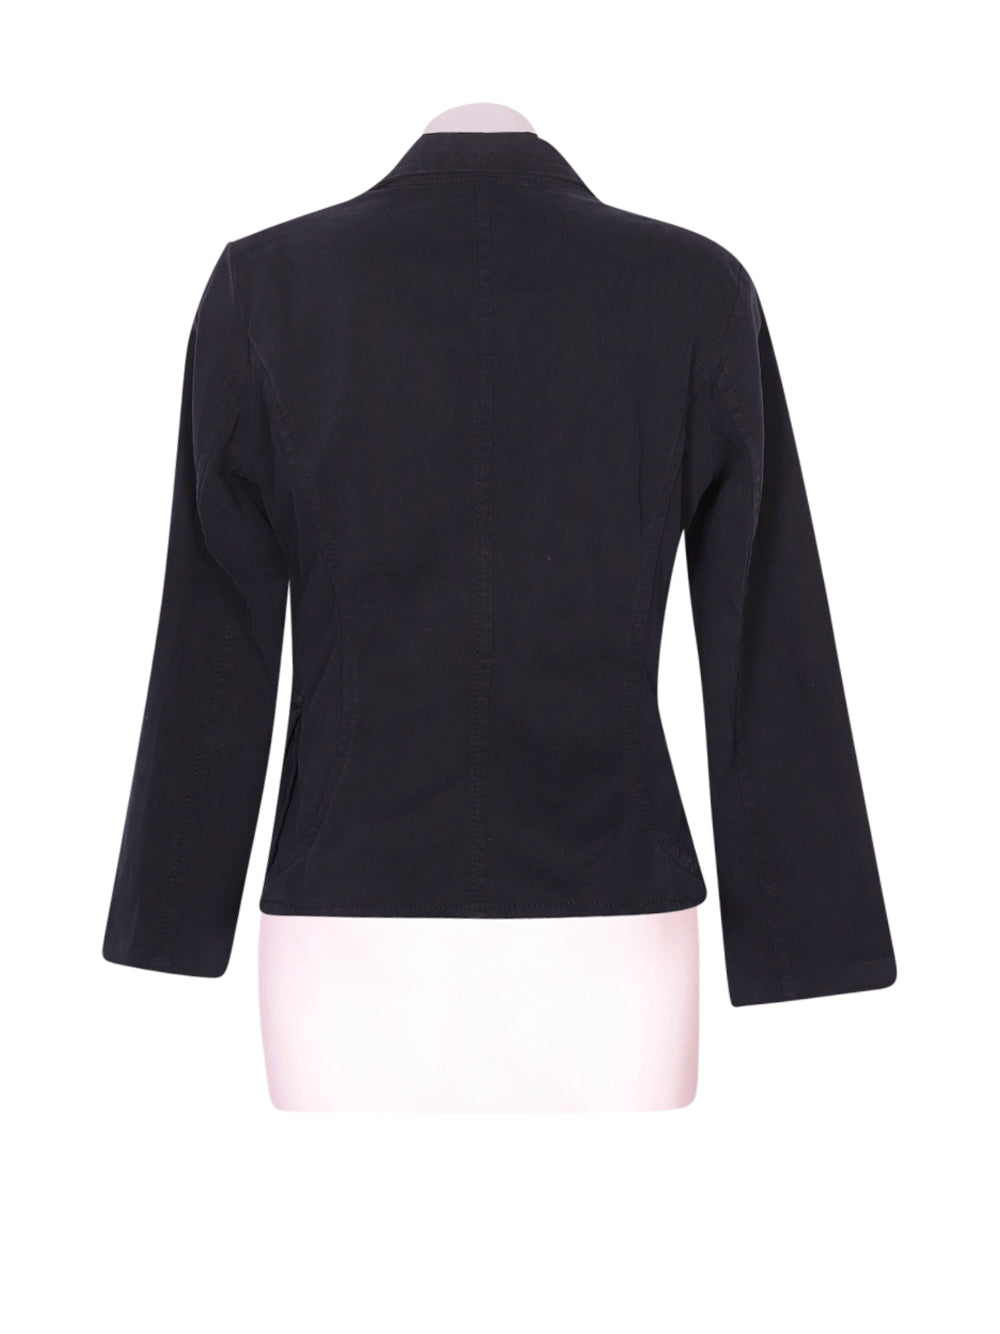 Back photo of Preloved Sisley Black Woman's blazer - size 10/M